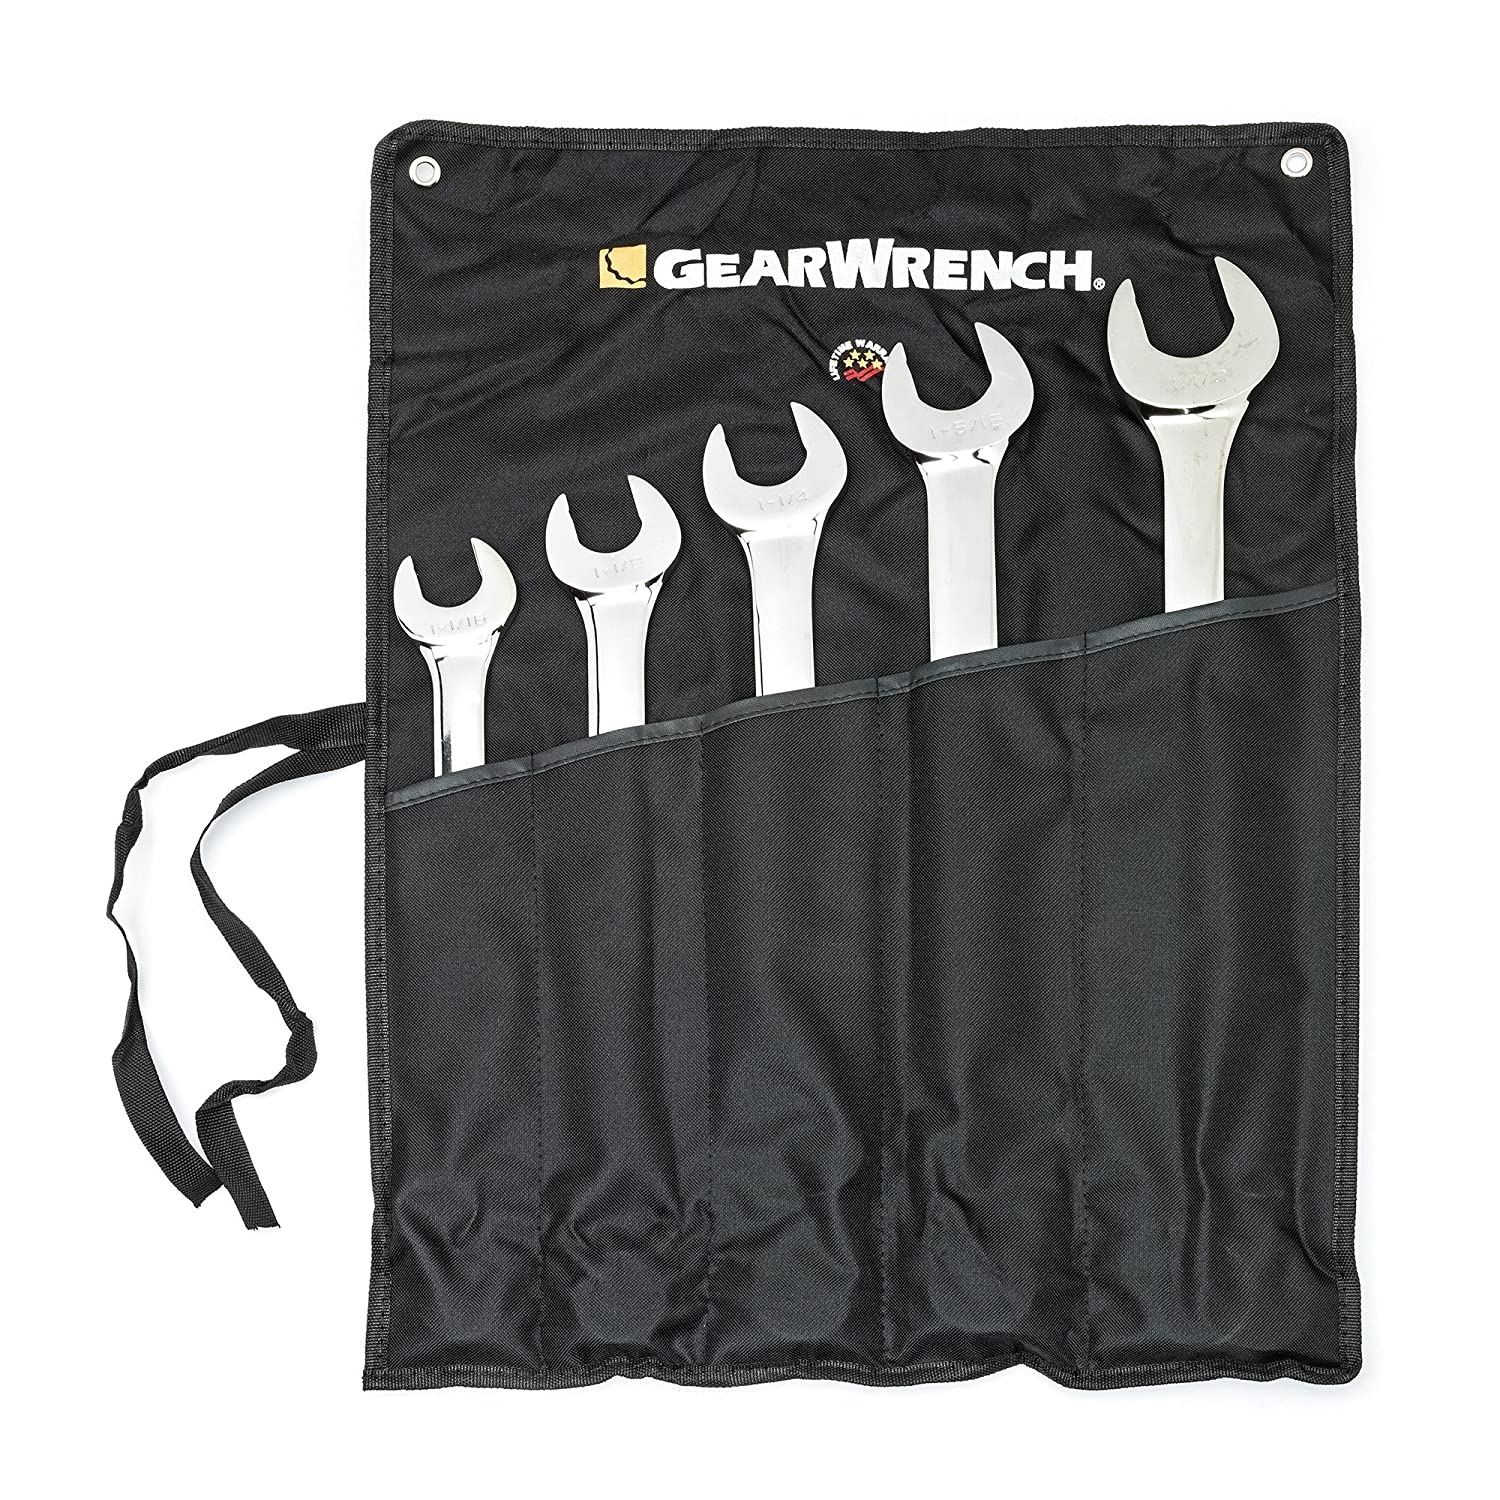 GEARWRENCH 81921 5 Piece Large Add-On Combination Wrench Set SAE